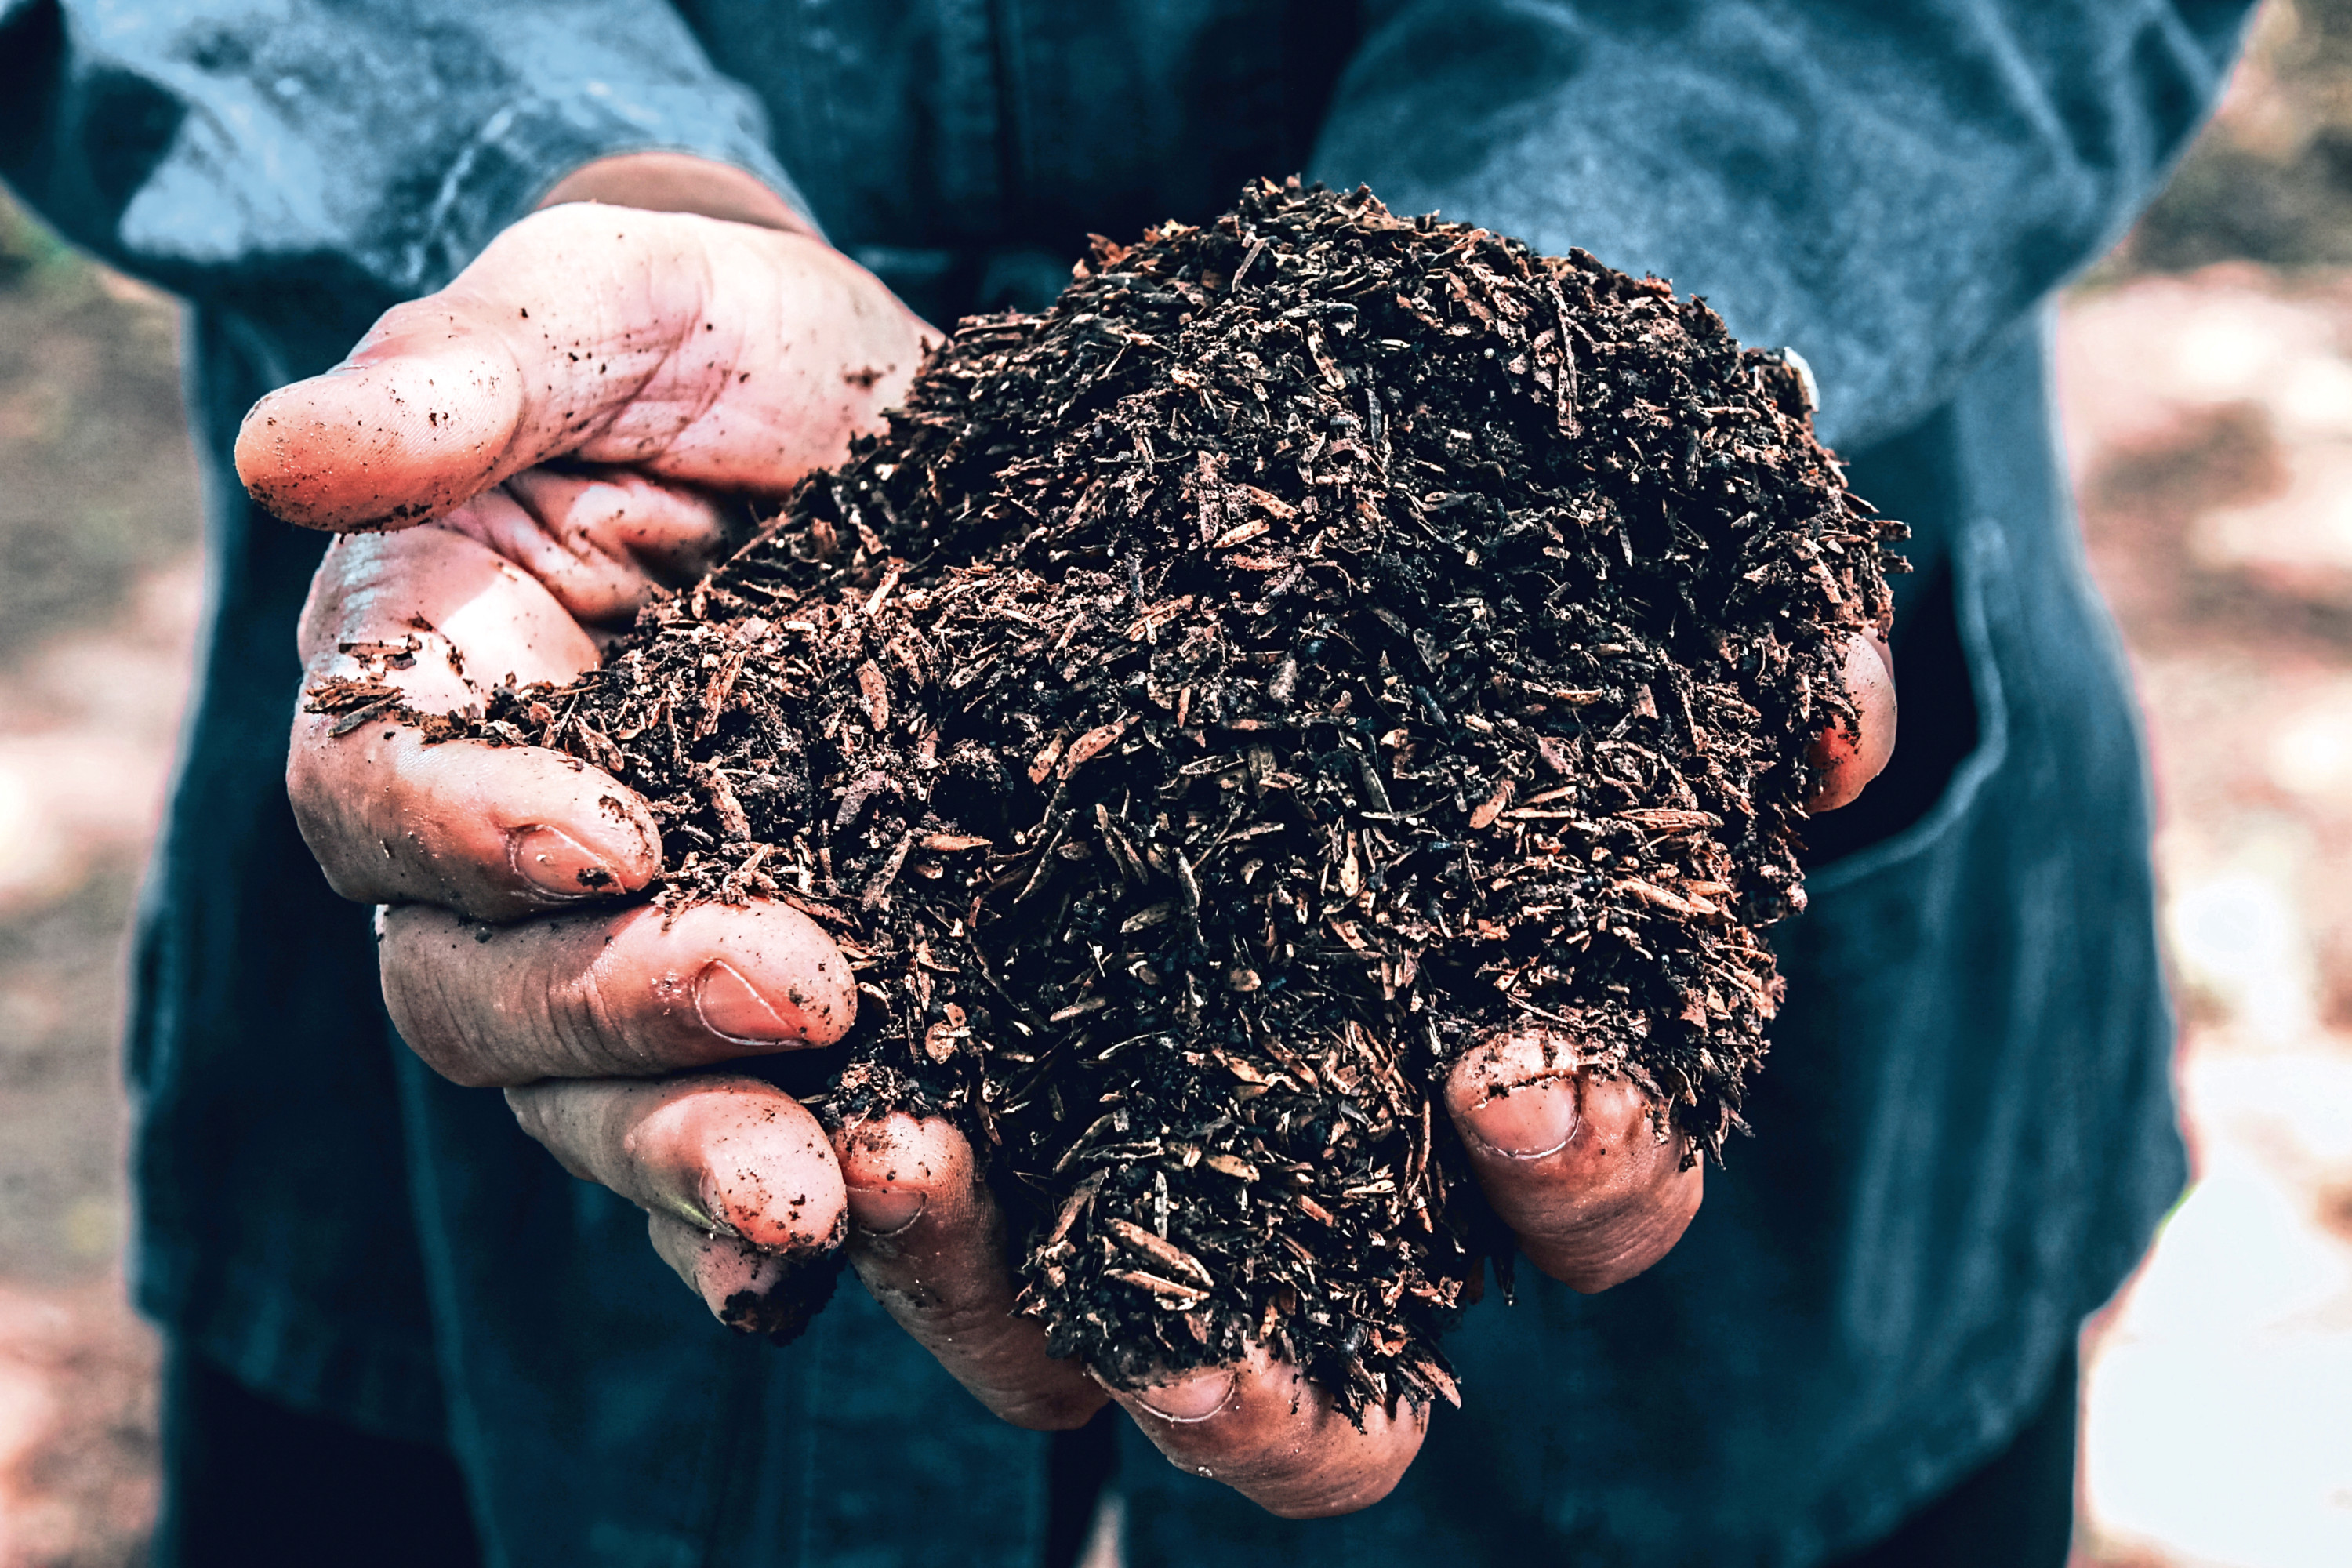 Data will be gathered on a range of measures, including soil.